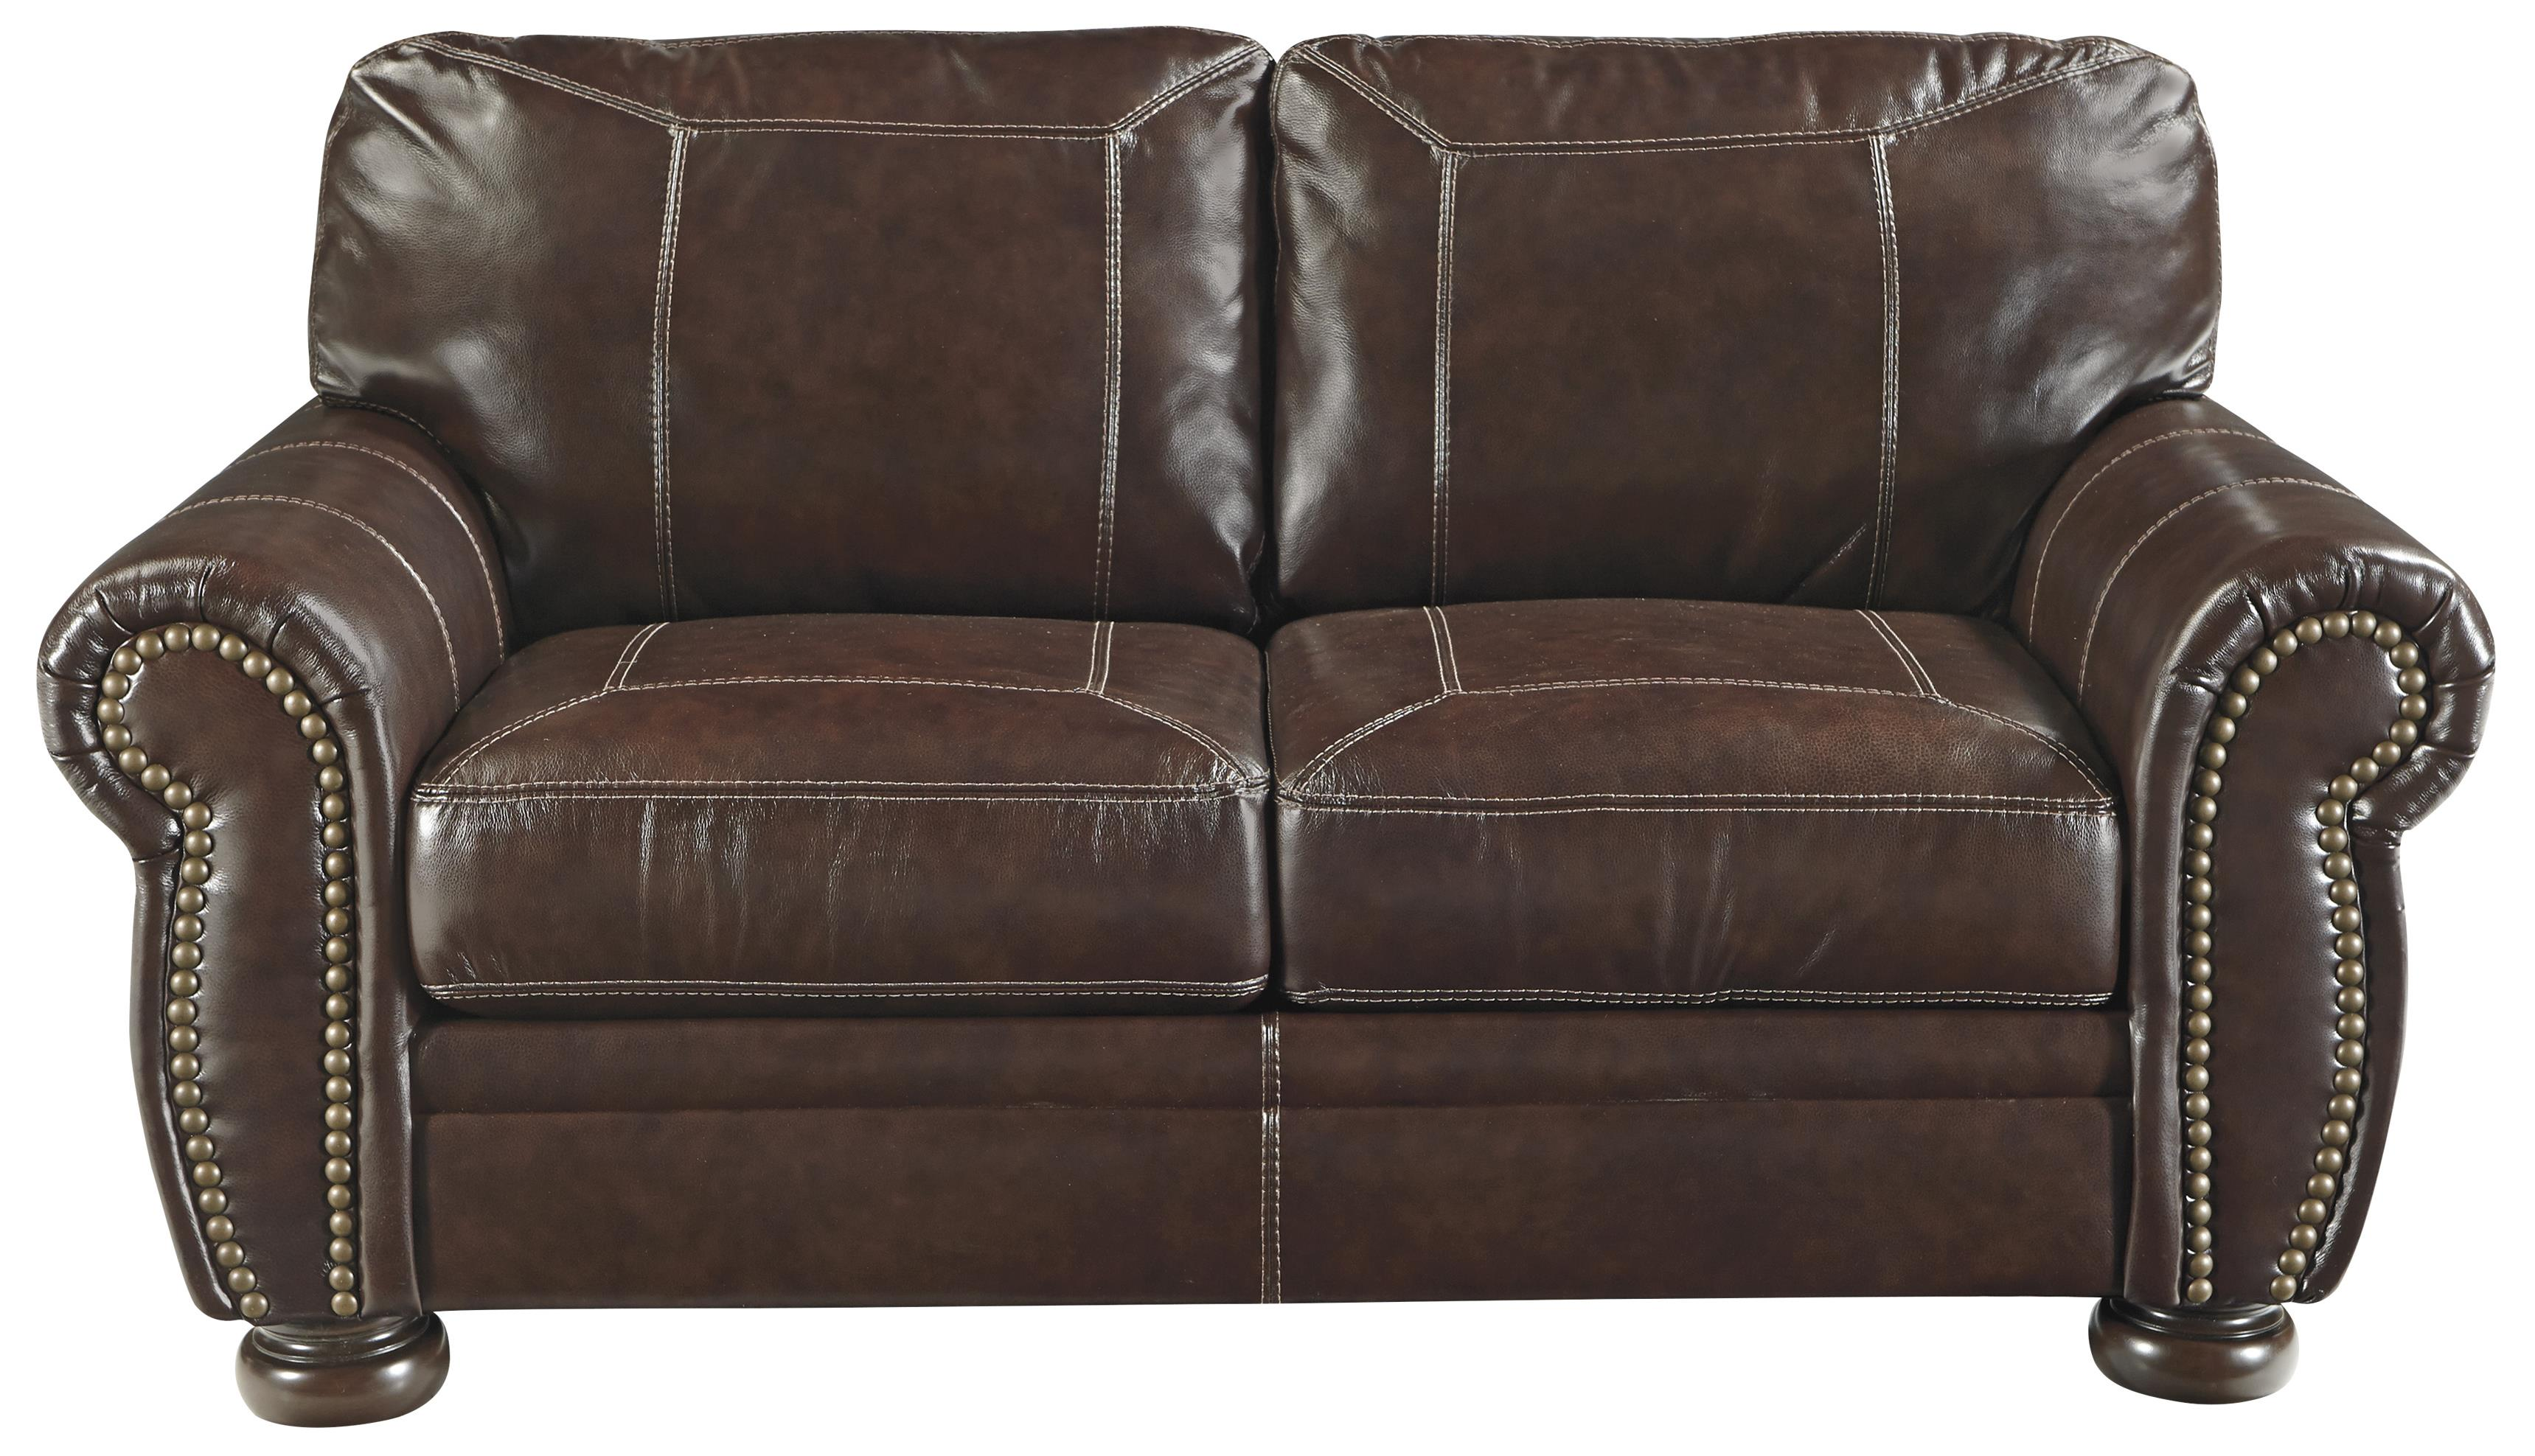 Traditional Leather Match Loveseat With Rolled Arms Nailhead Trim Bun Feet By Signature